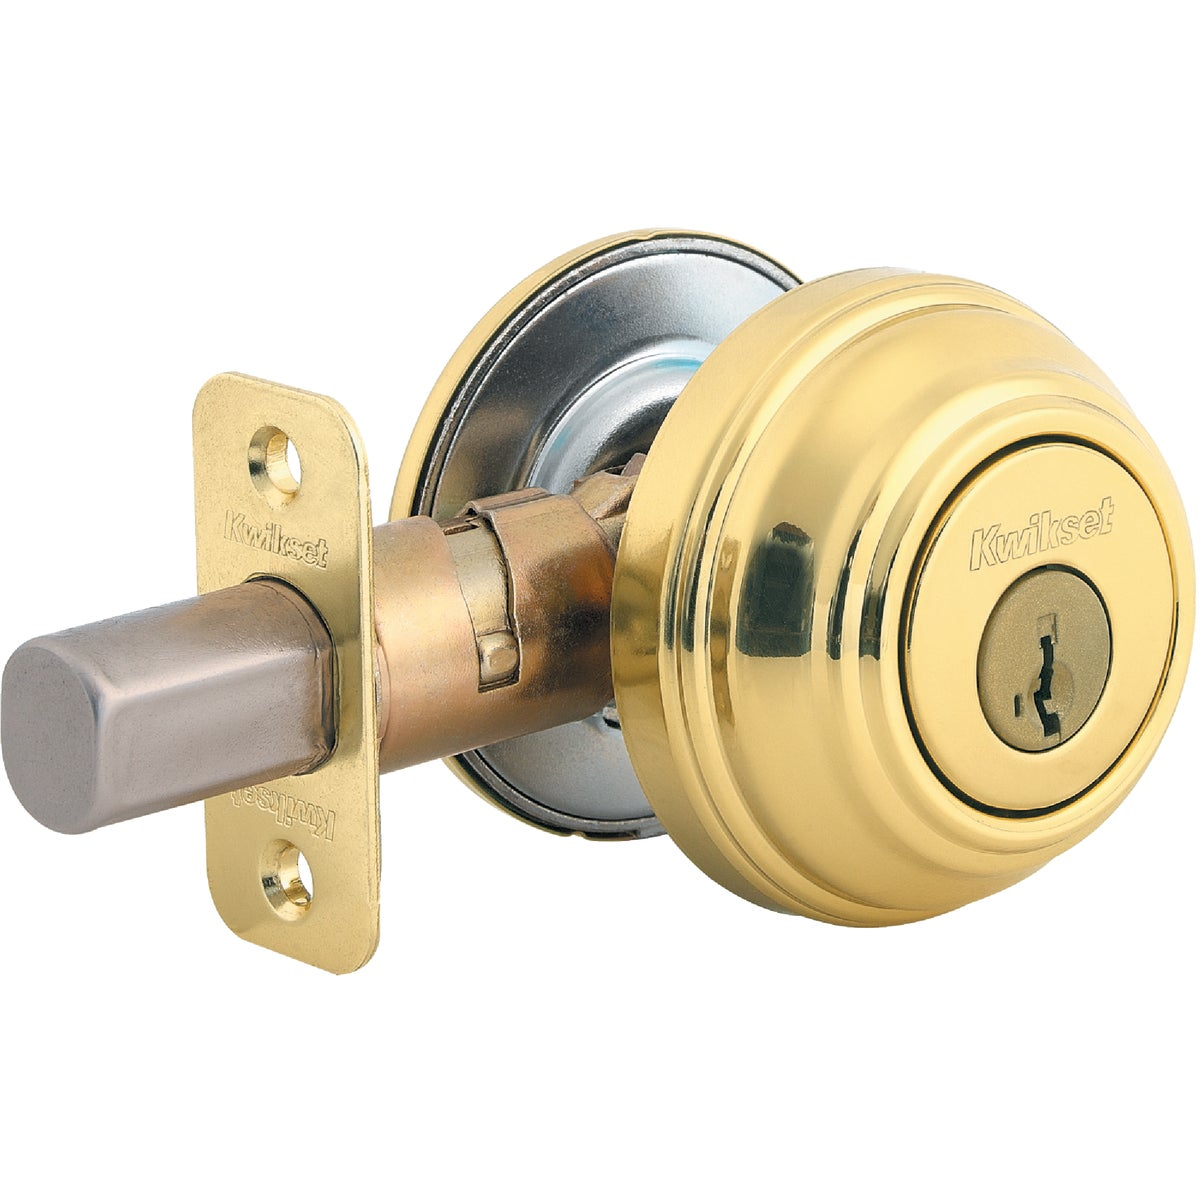 Item 200080, Grade 1 security single cylinder deadbolt with SmartKey cylinder. Cylinder design eliminates traditional pins and springs. Cylinder provides instant re-key functionality.